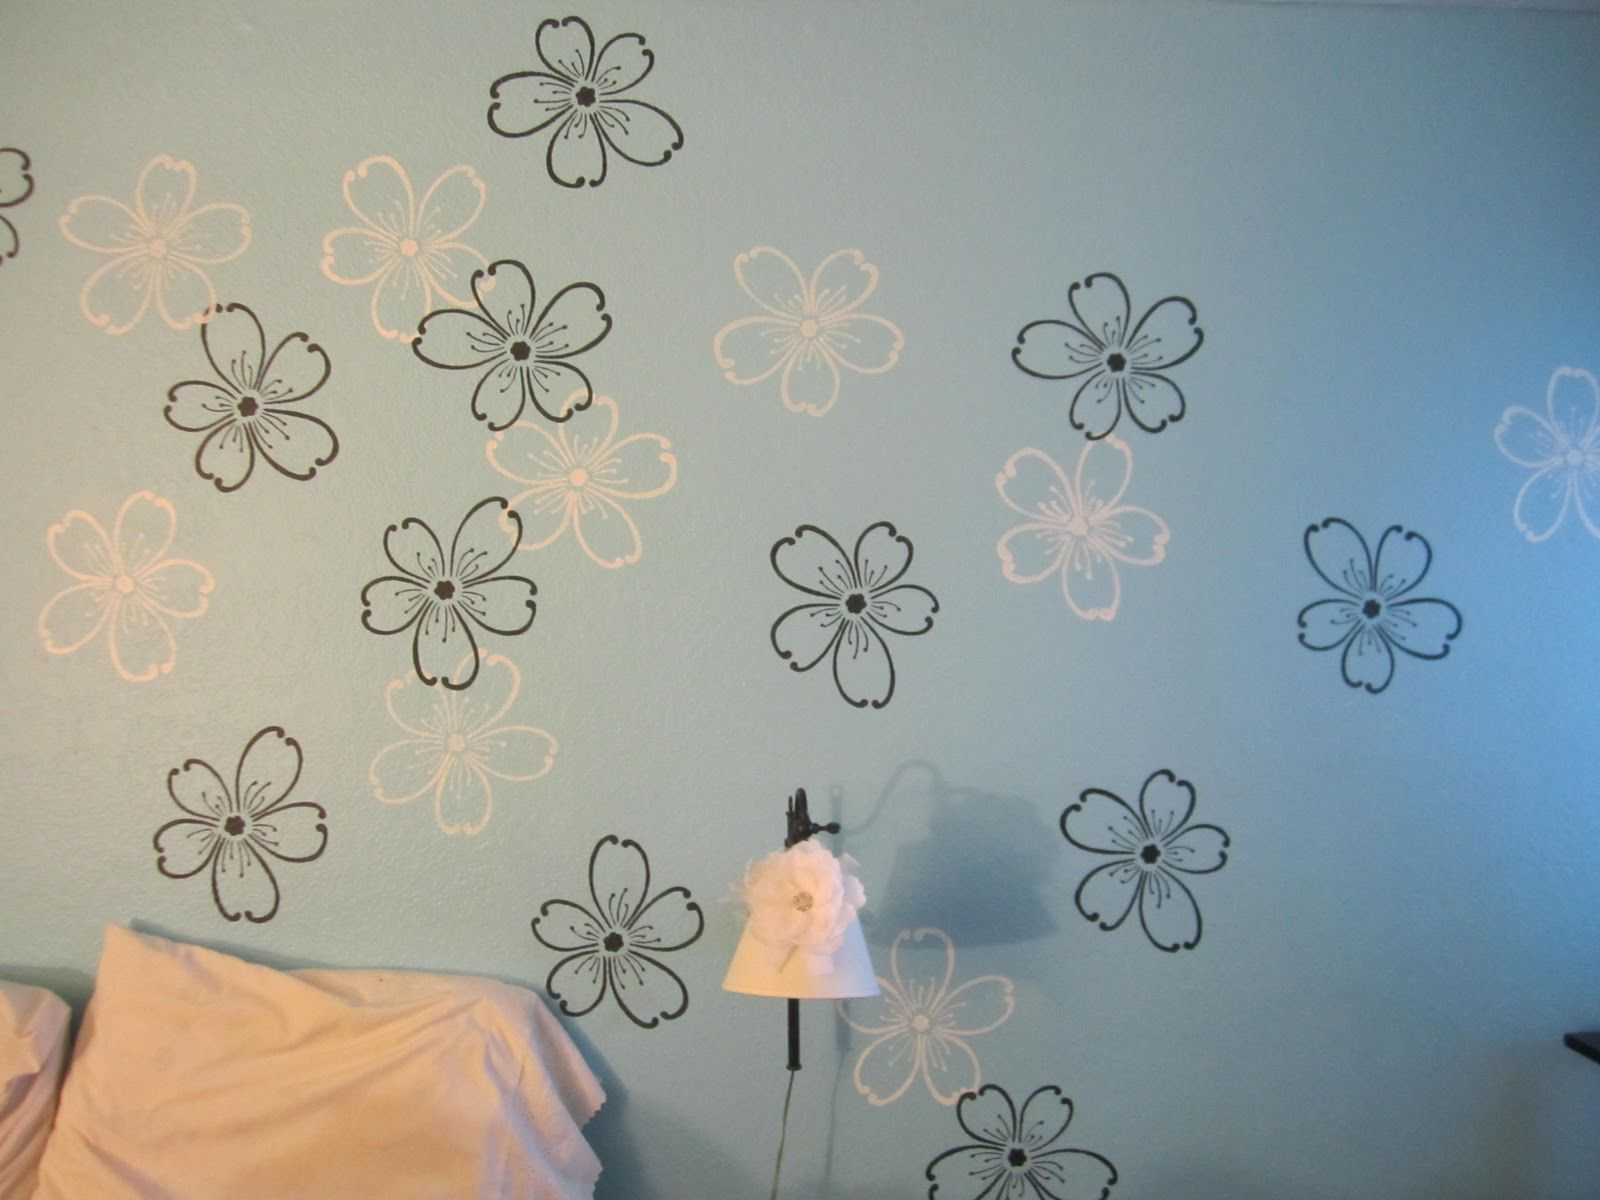 On The Wall Painting Wall Paint Stencils With Beautiful Wall Painting Flower Stencils